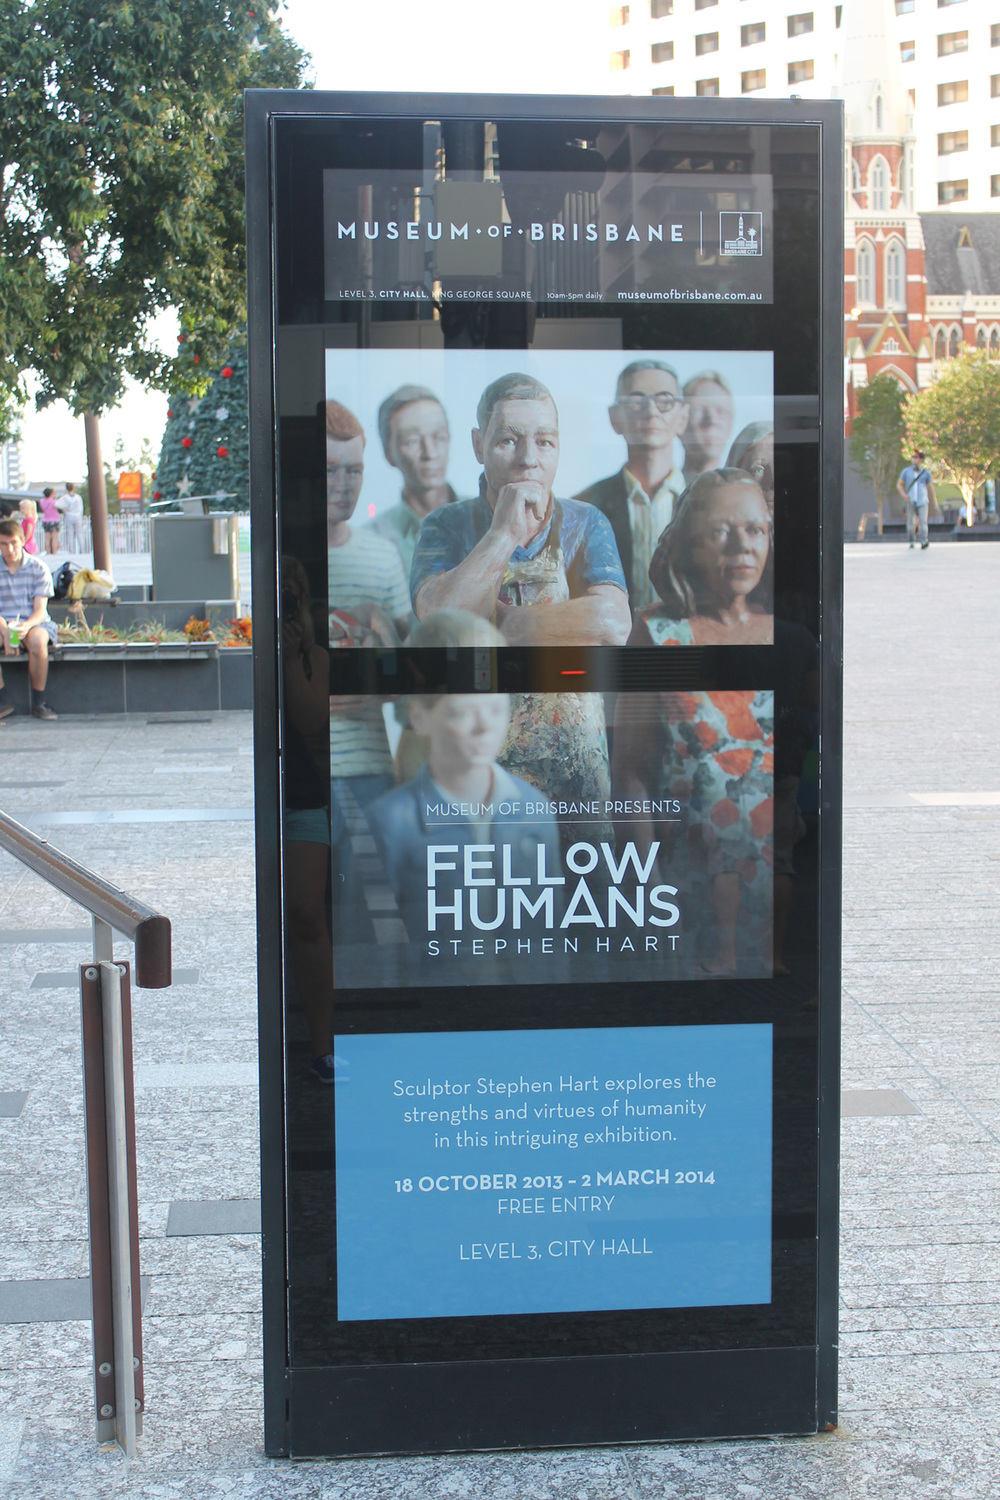 Museum-of-Brisbane_Fellow-Humans_4.jpg